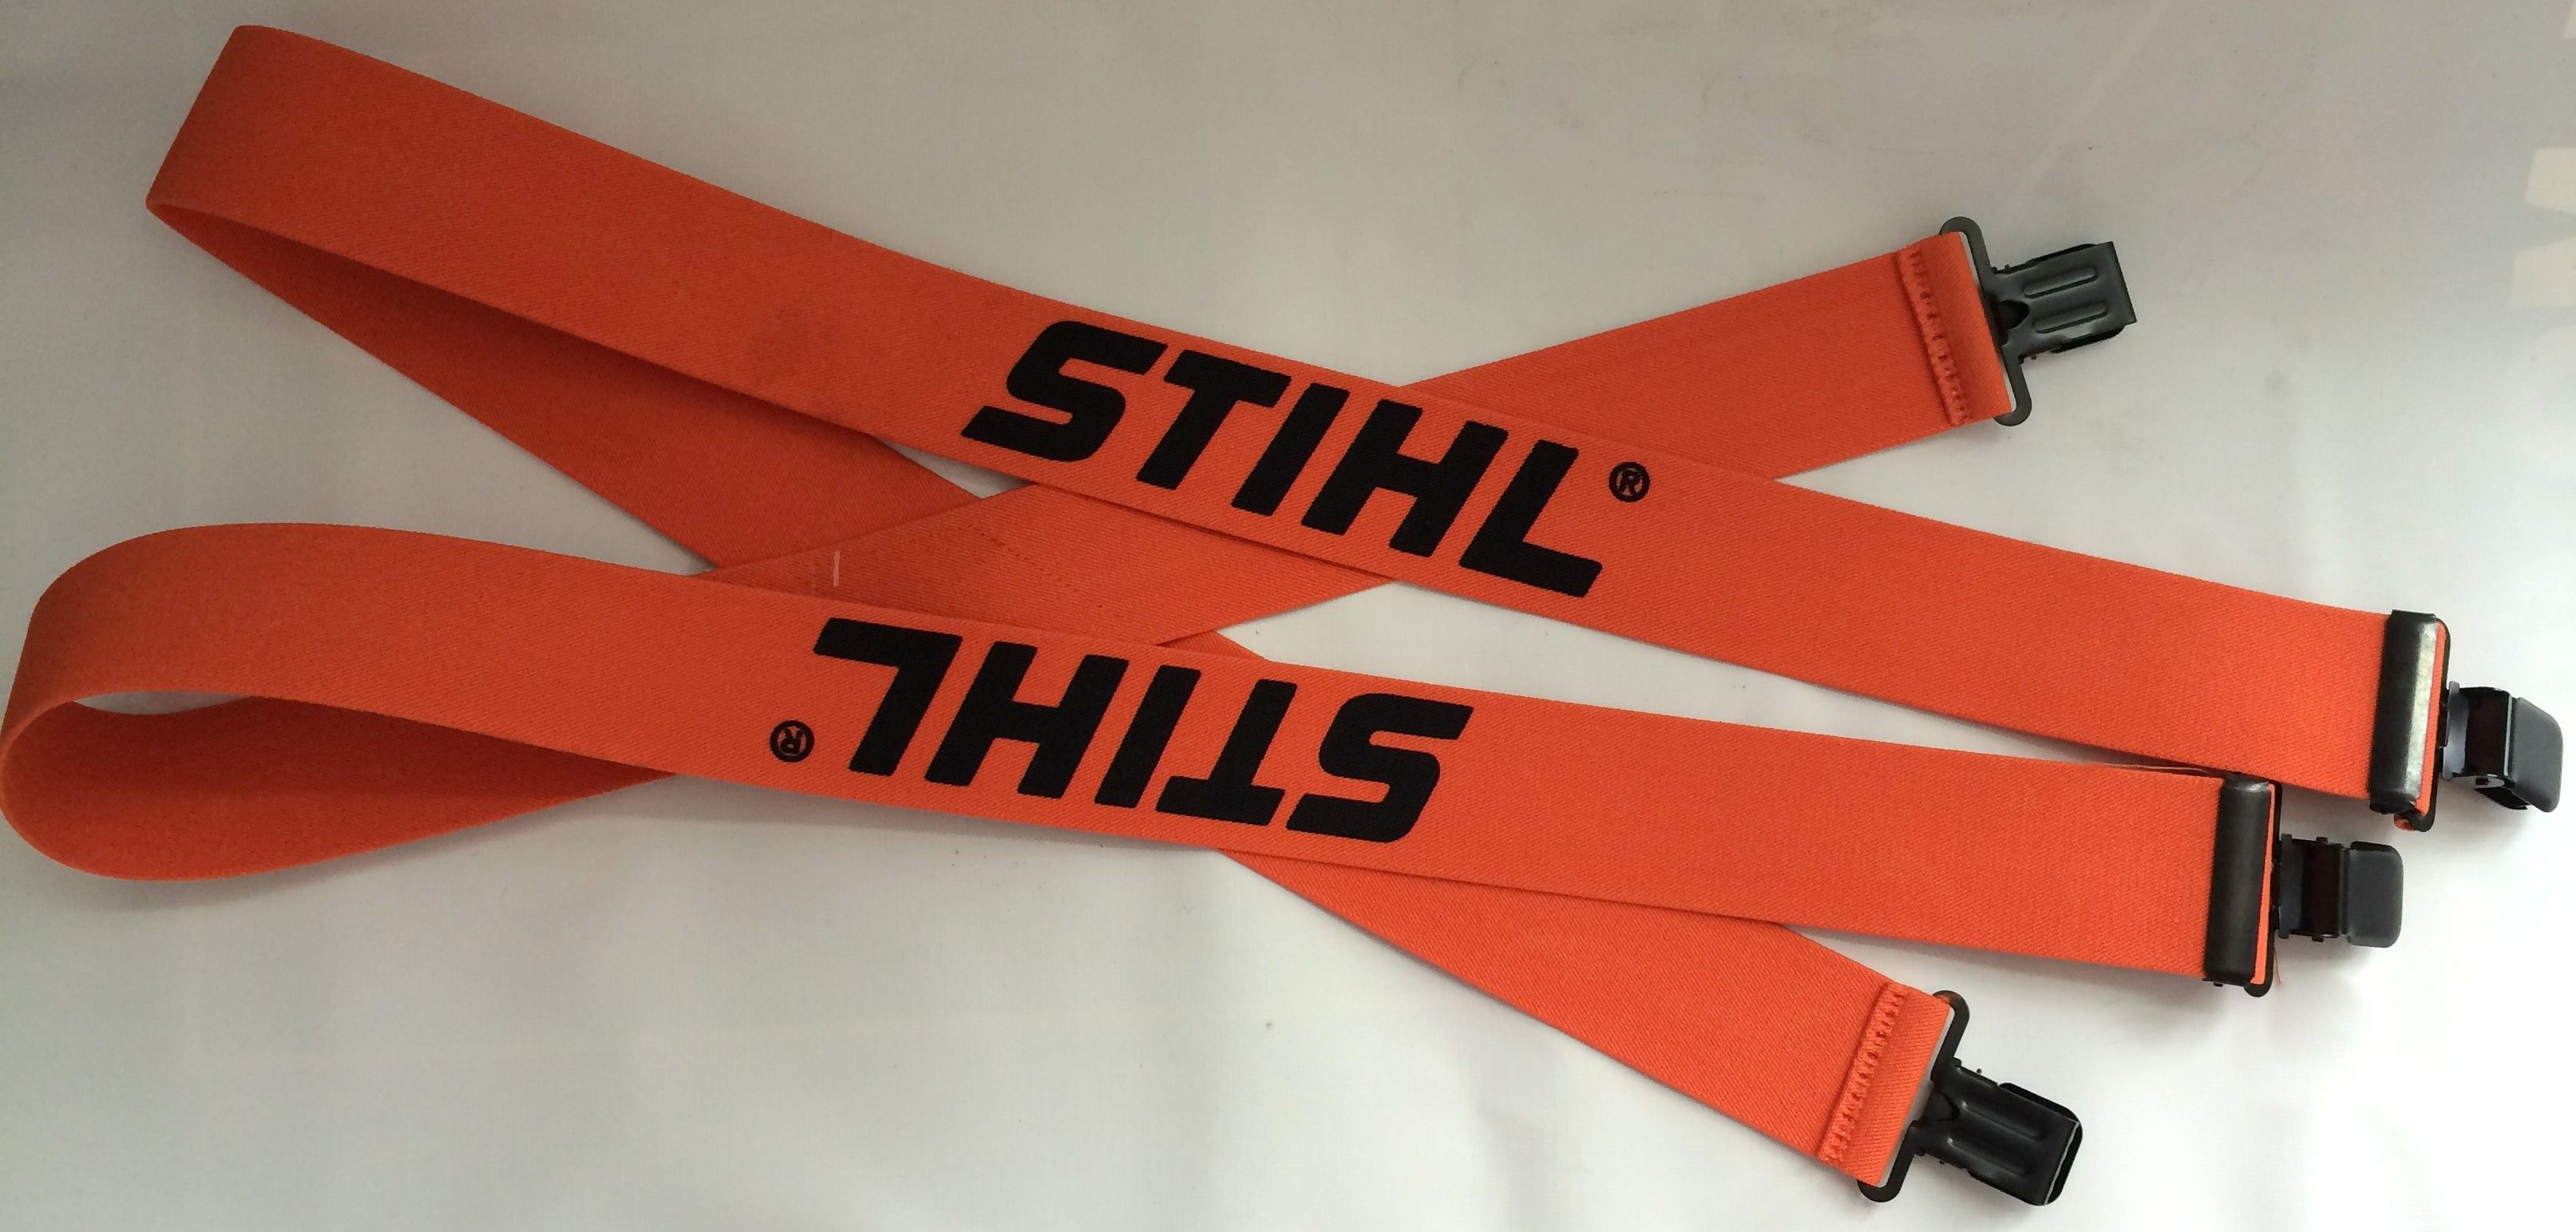 STIHL Suspenders model 7002 885 1500